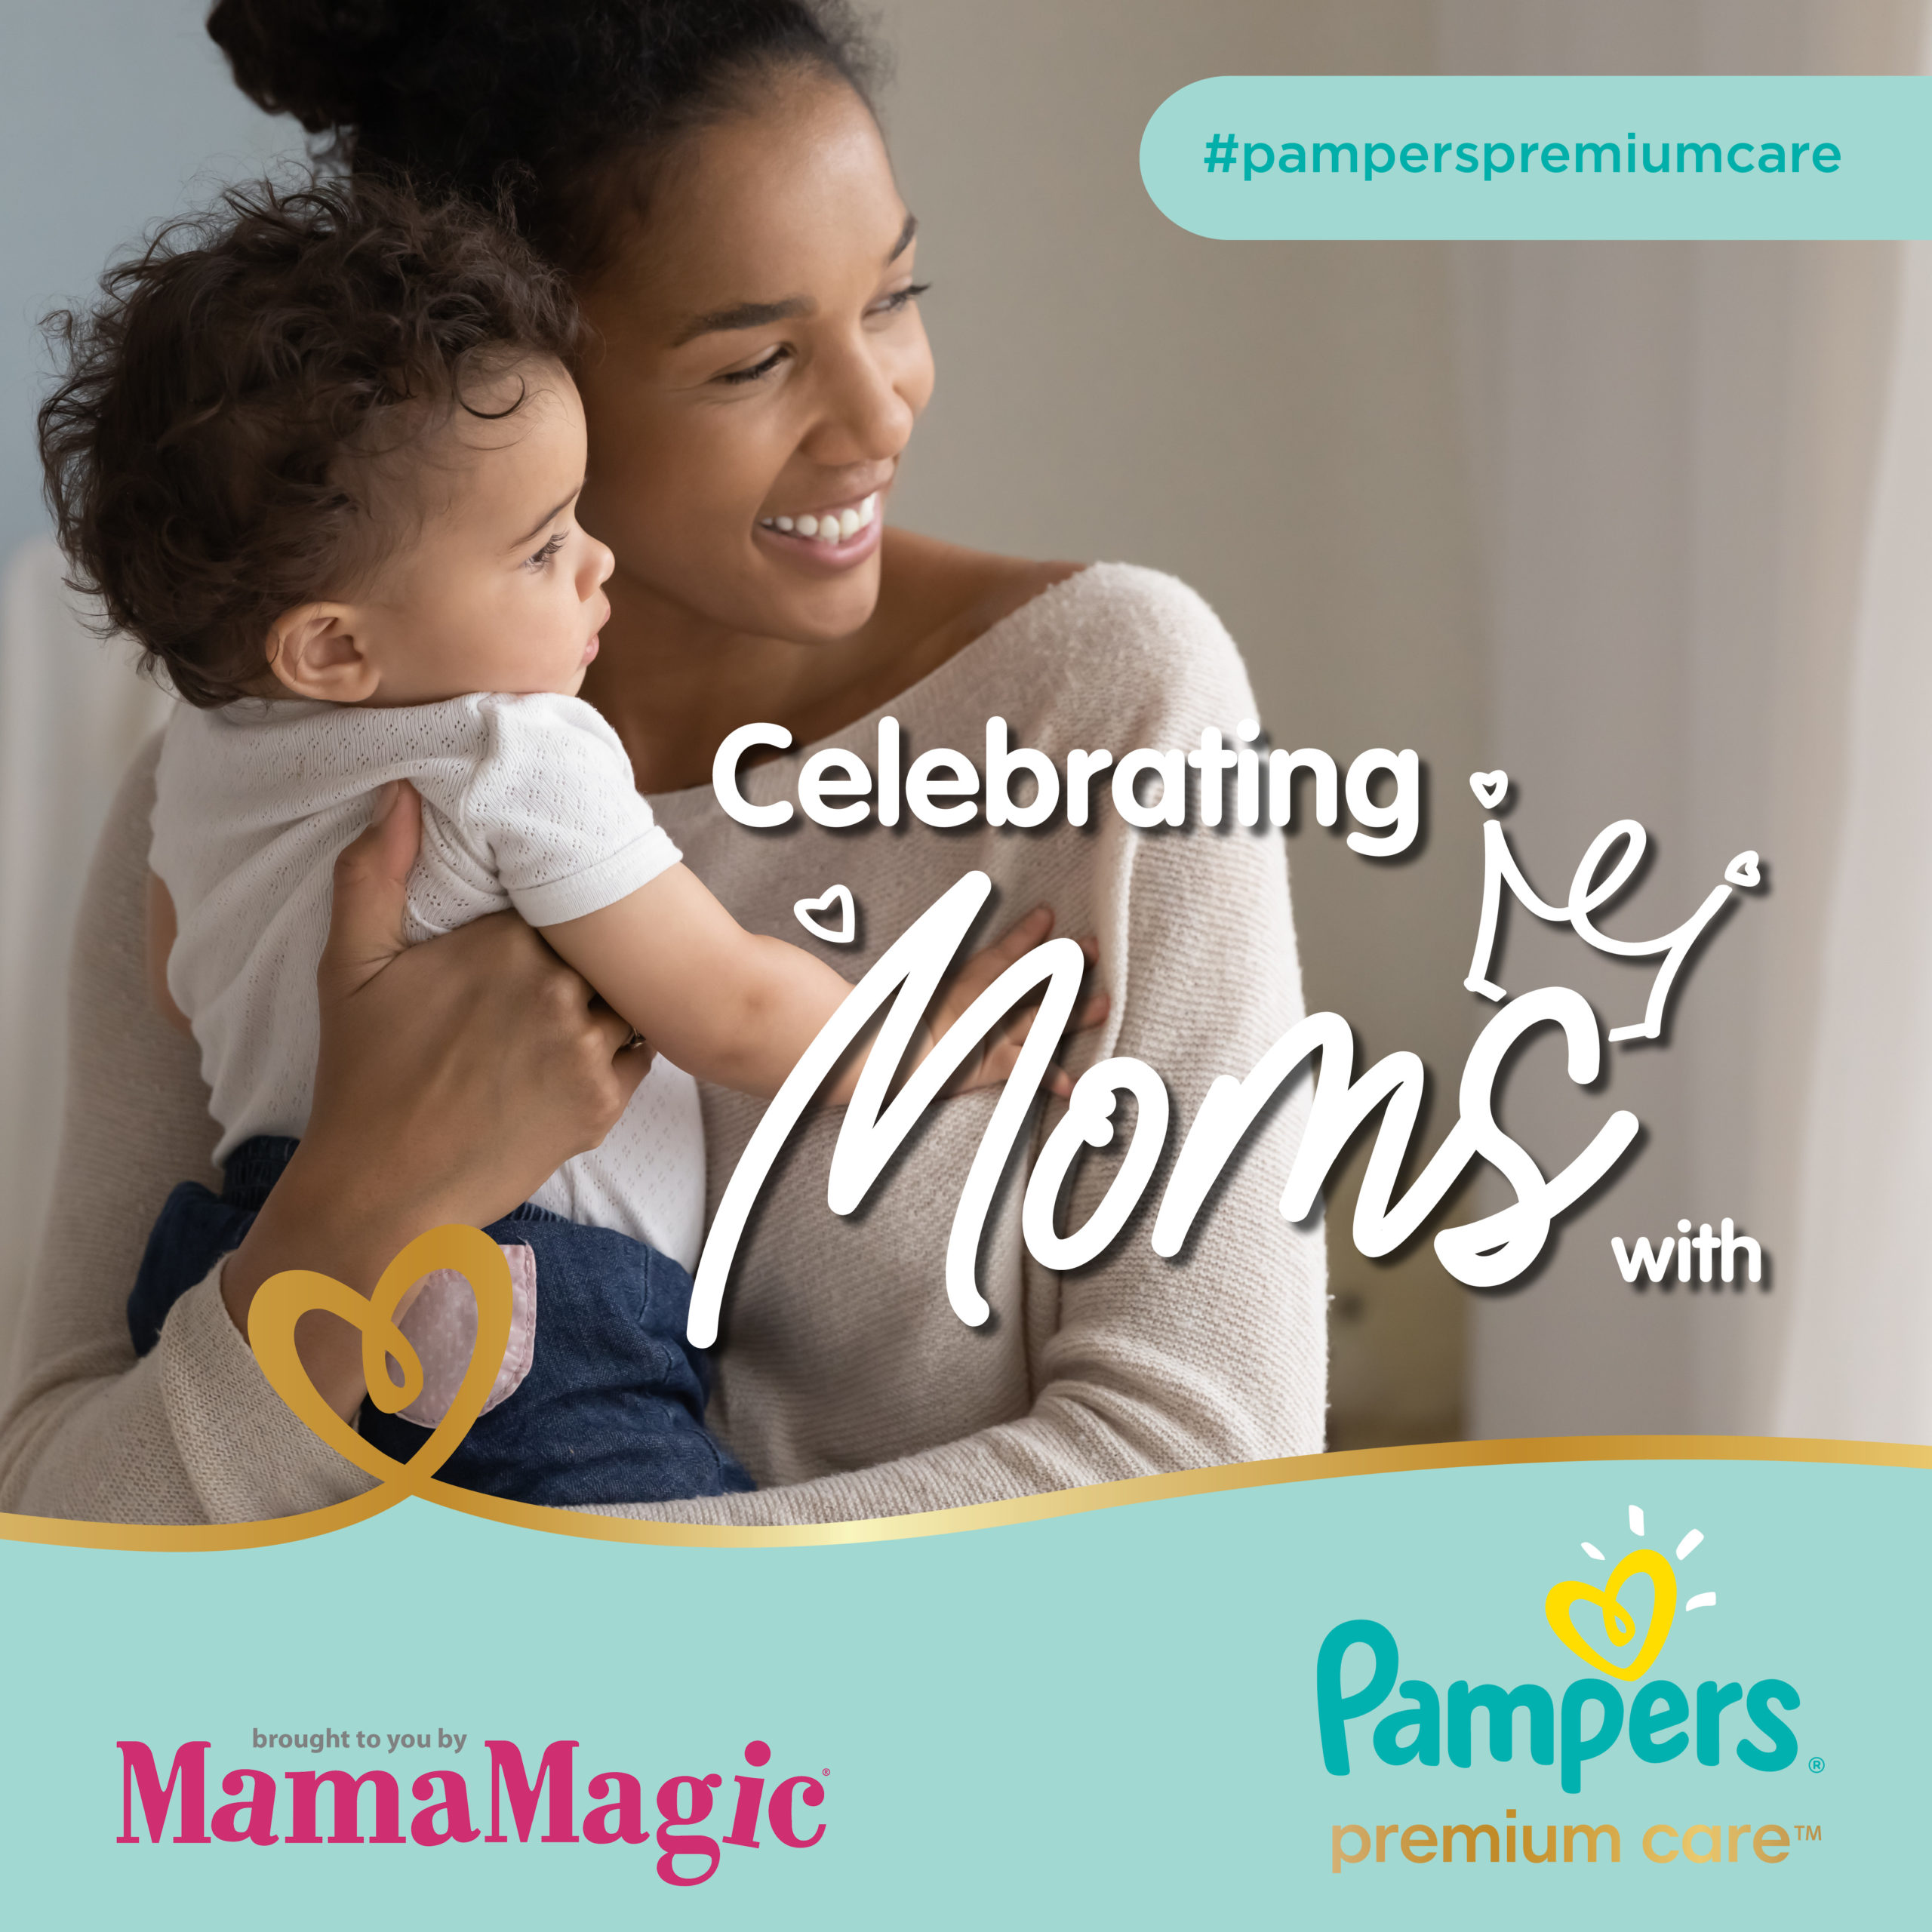 Pampers South Africa – Celebrating Motherhood With MamaMagic